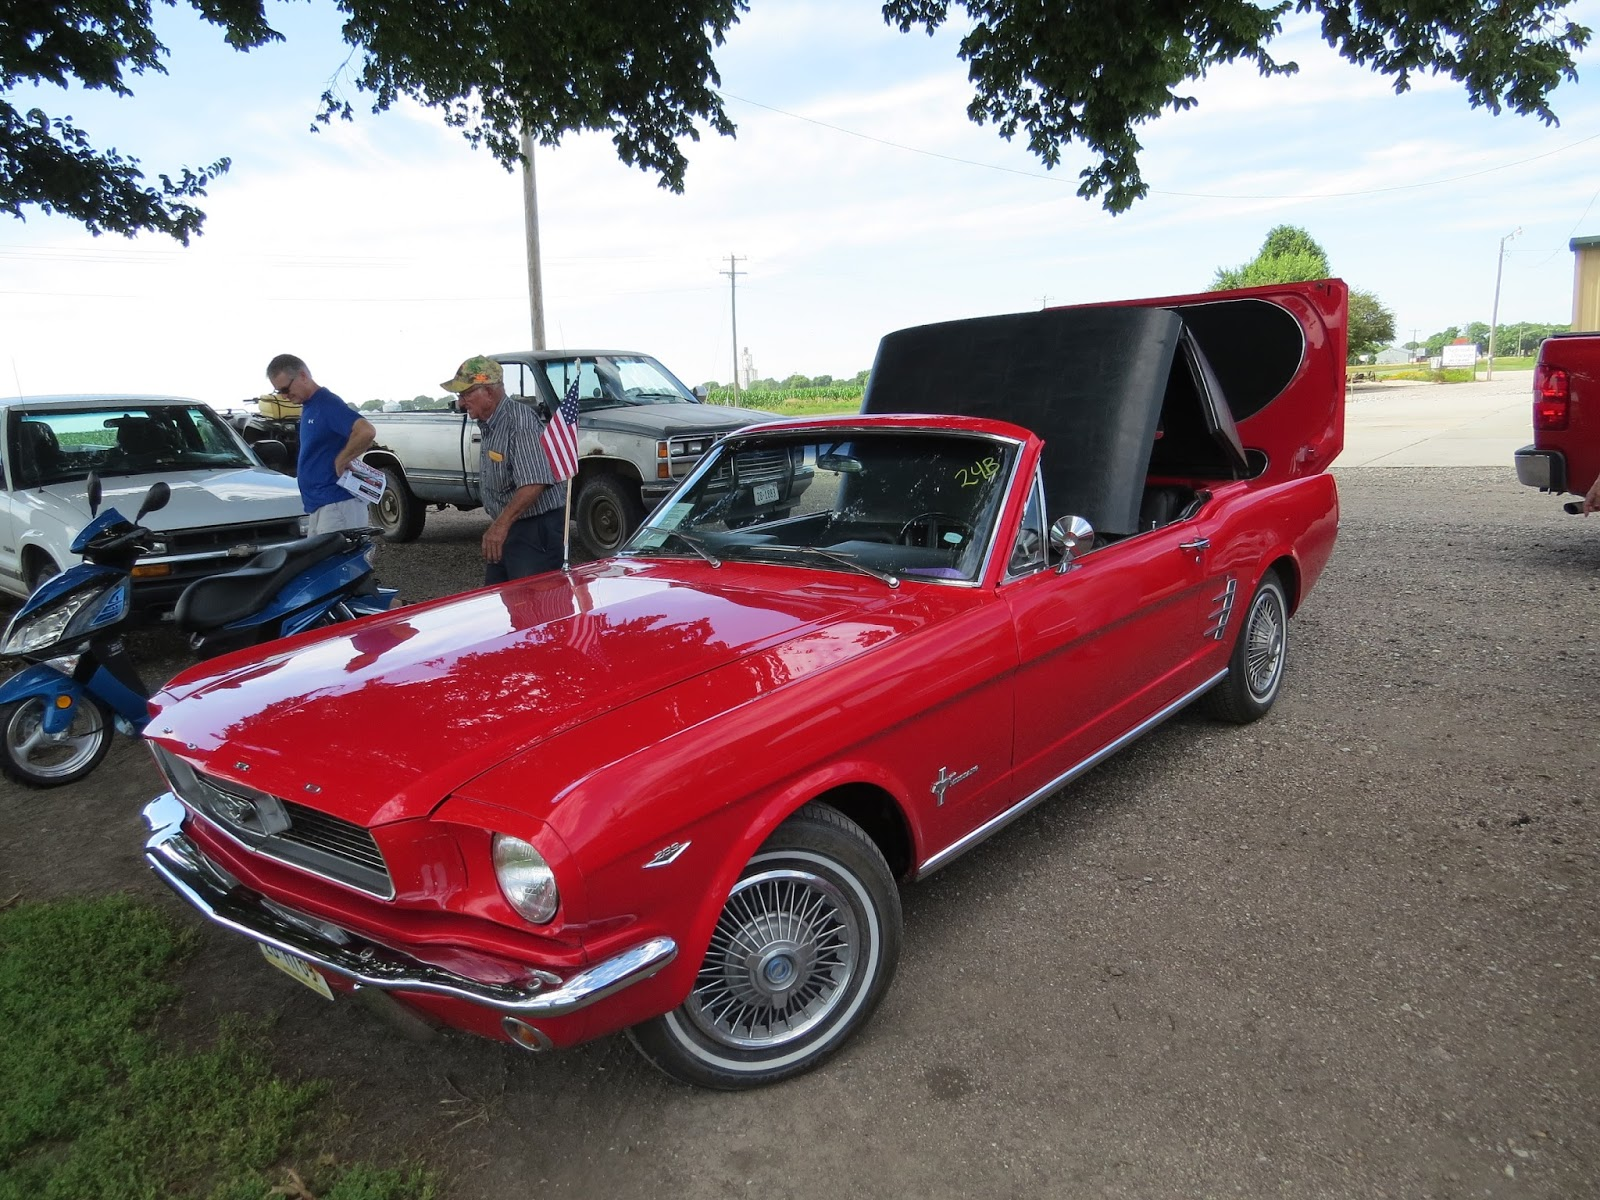 Mustang hardtop convertible prototype to be auctioned